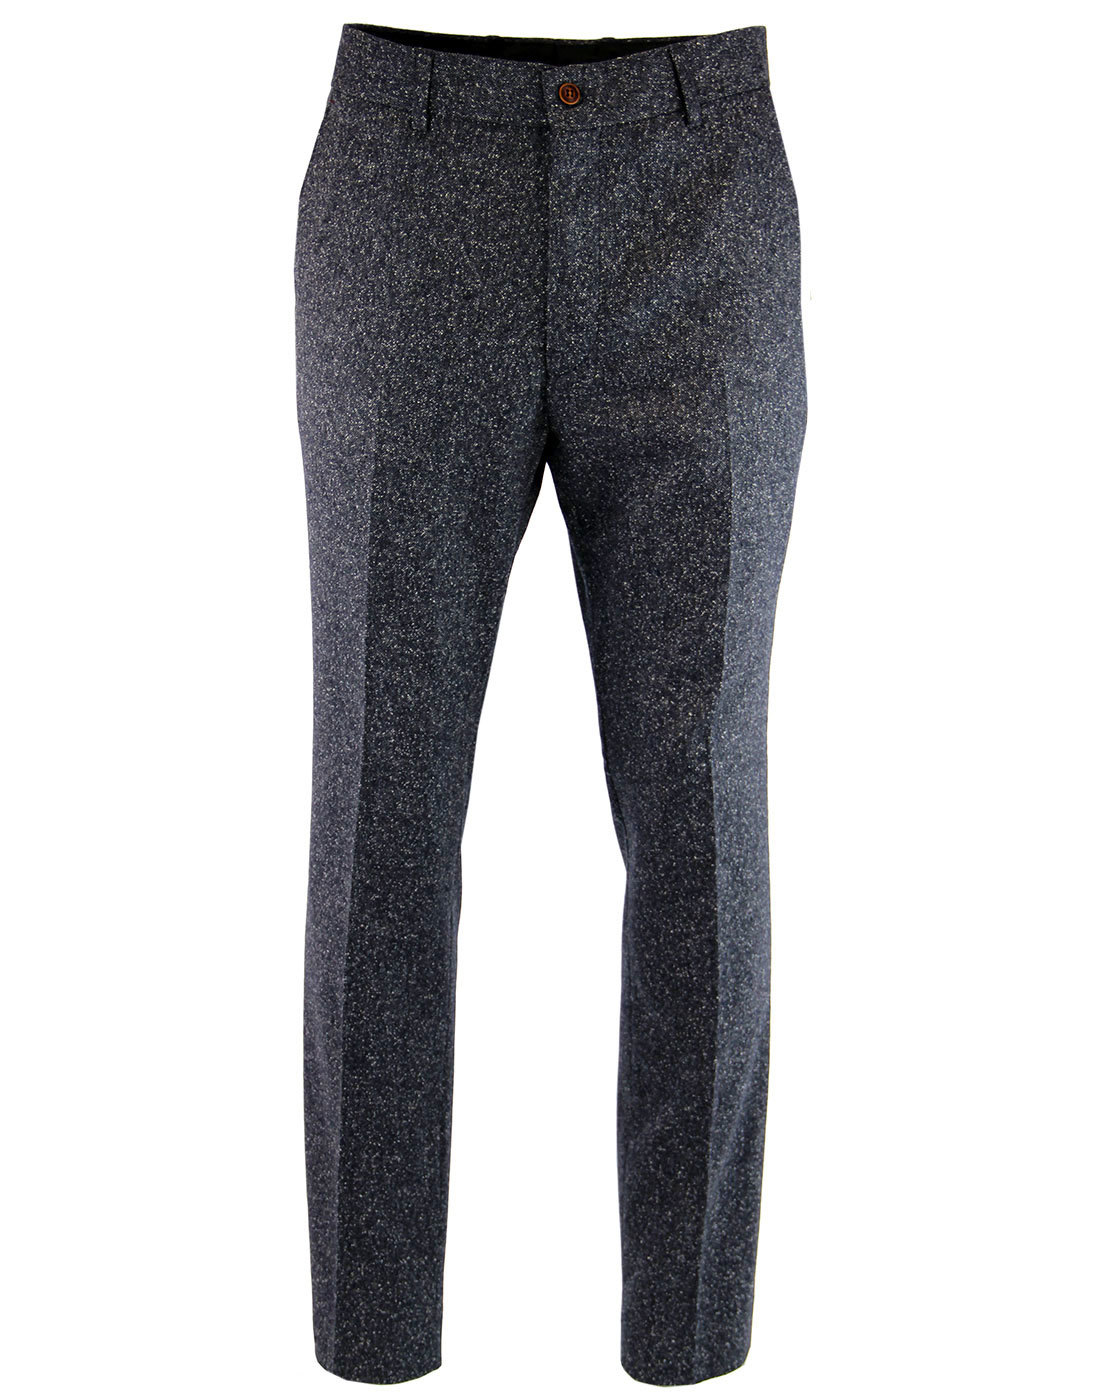 GIBSON LONDON Mod Donegal Flat Front Trousers (D)